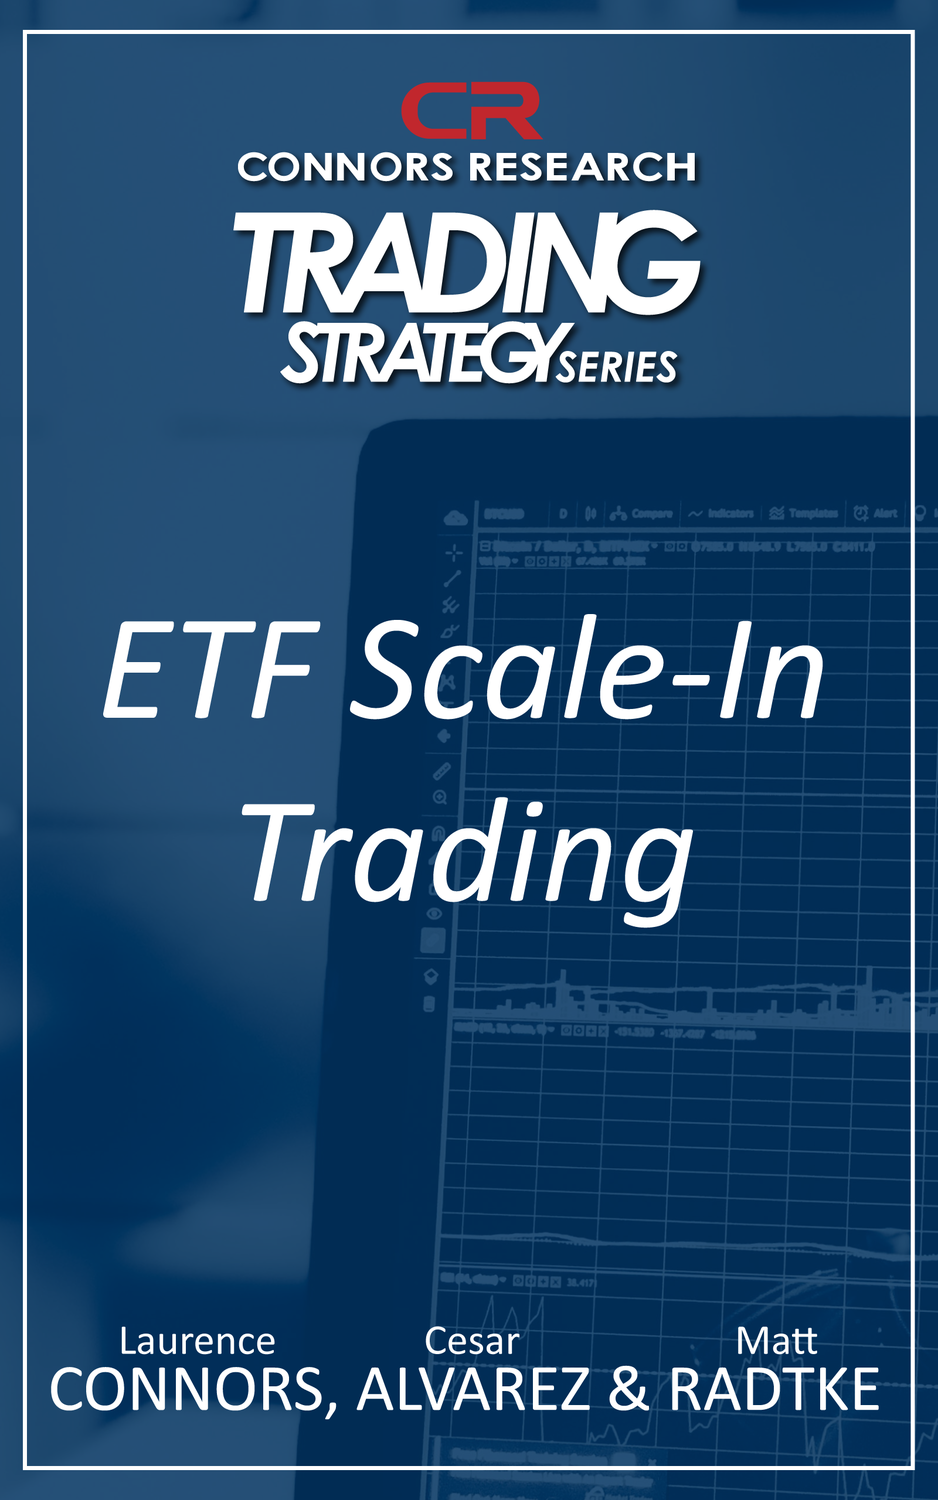 Connors Research Trading Strategy Series: ETF Scale-In Trading